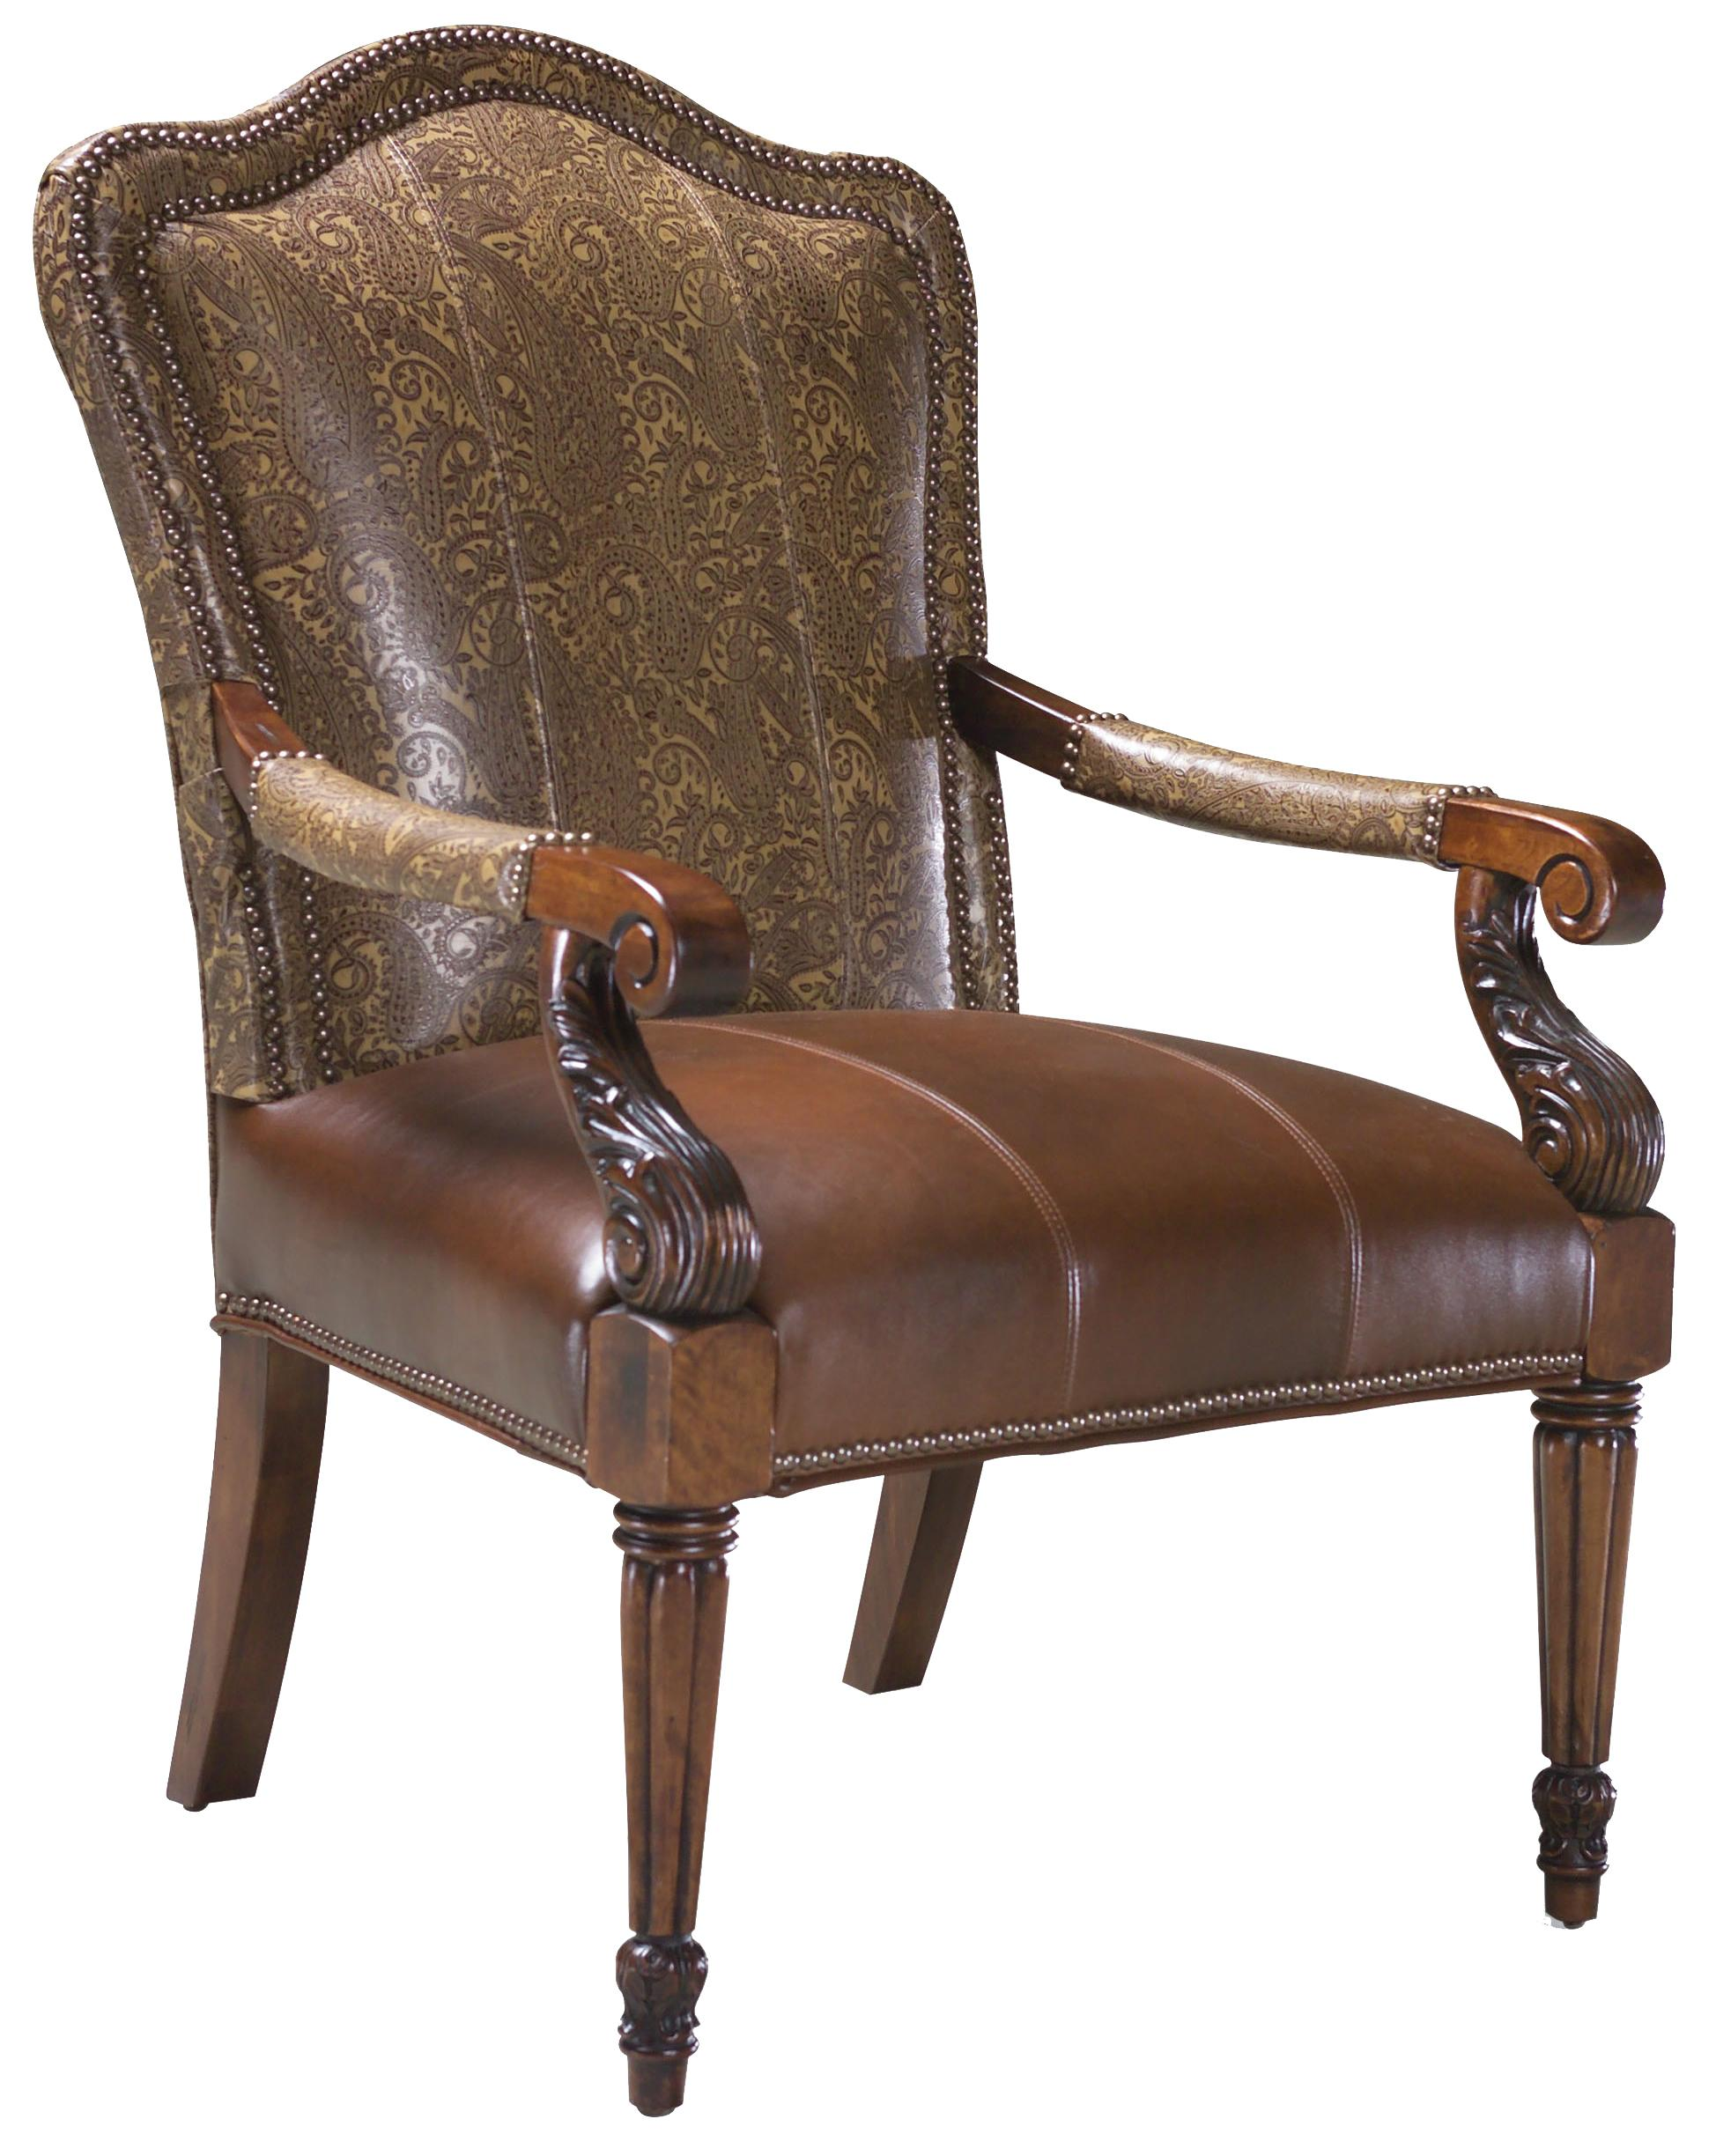 Fairfield Chairs Elegant Occasional Chair - Item Number: 5443-01